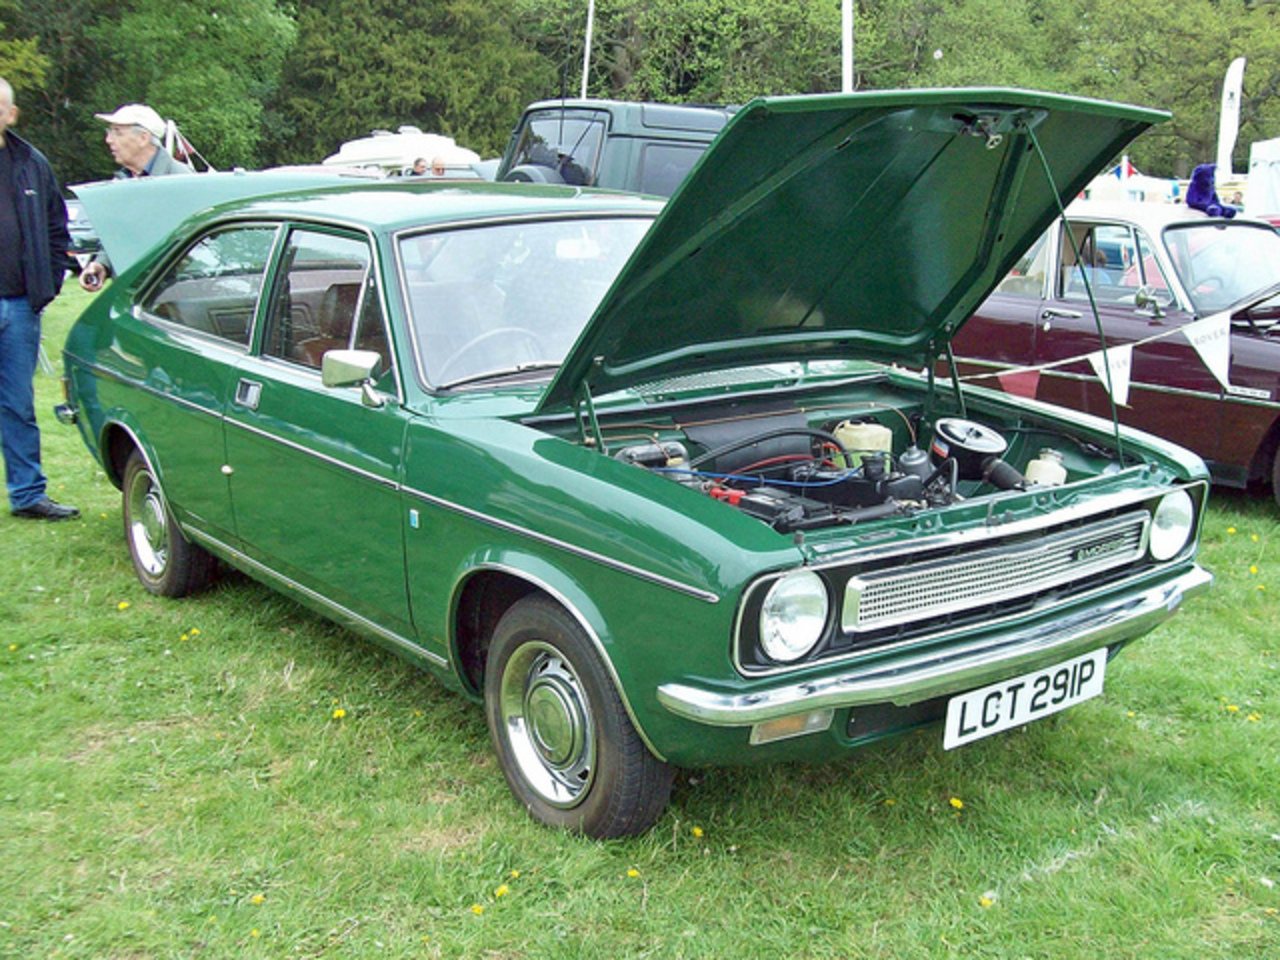 278 Morris Marina 1.8SDL Coupe (1976) | Flickr - Photo Sharing!